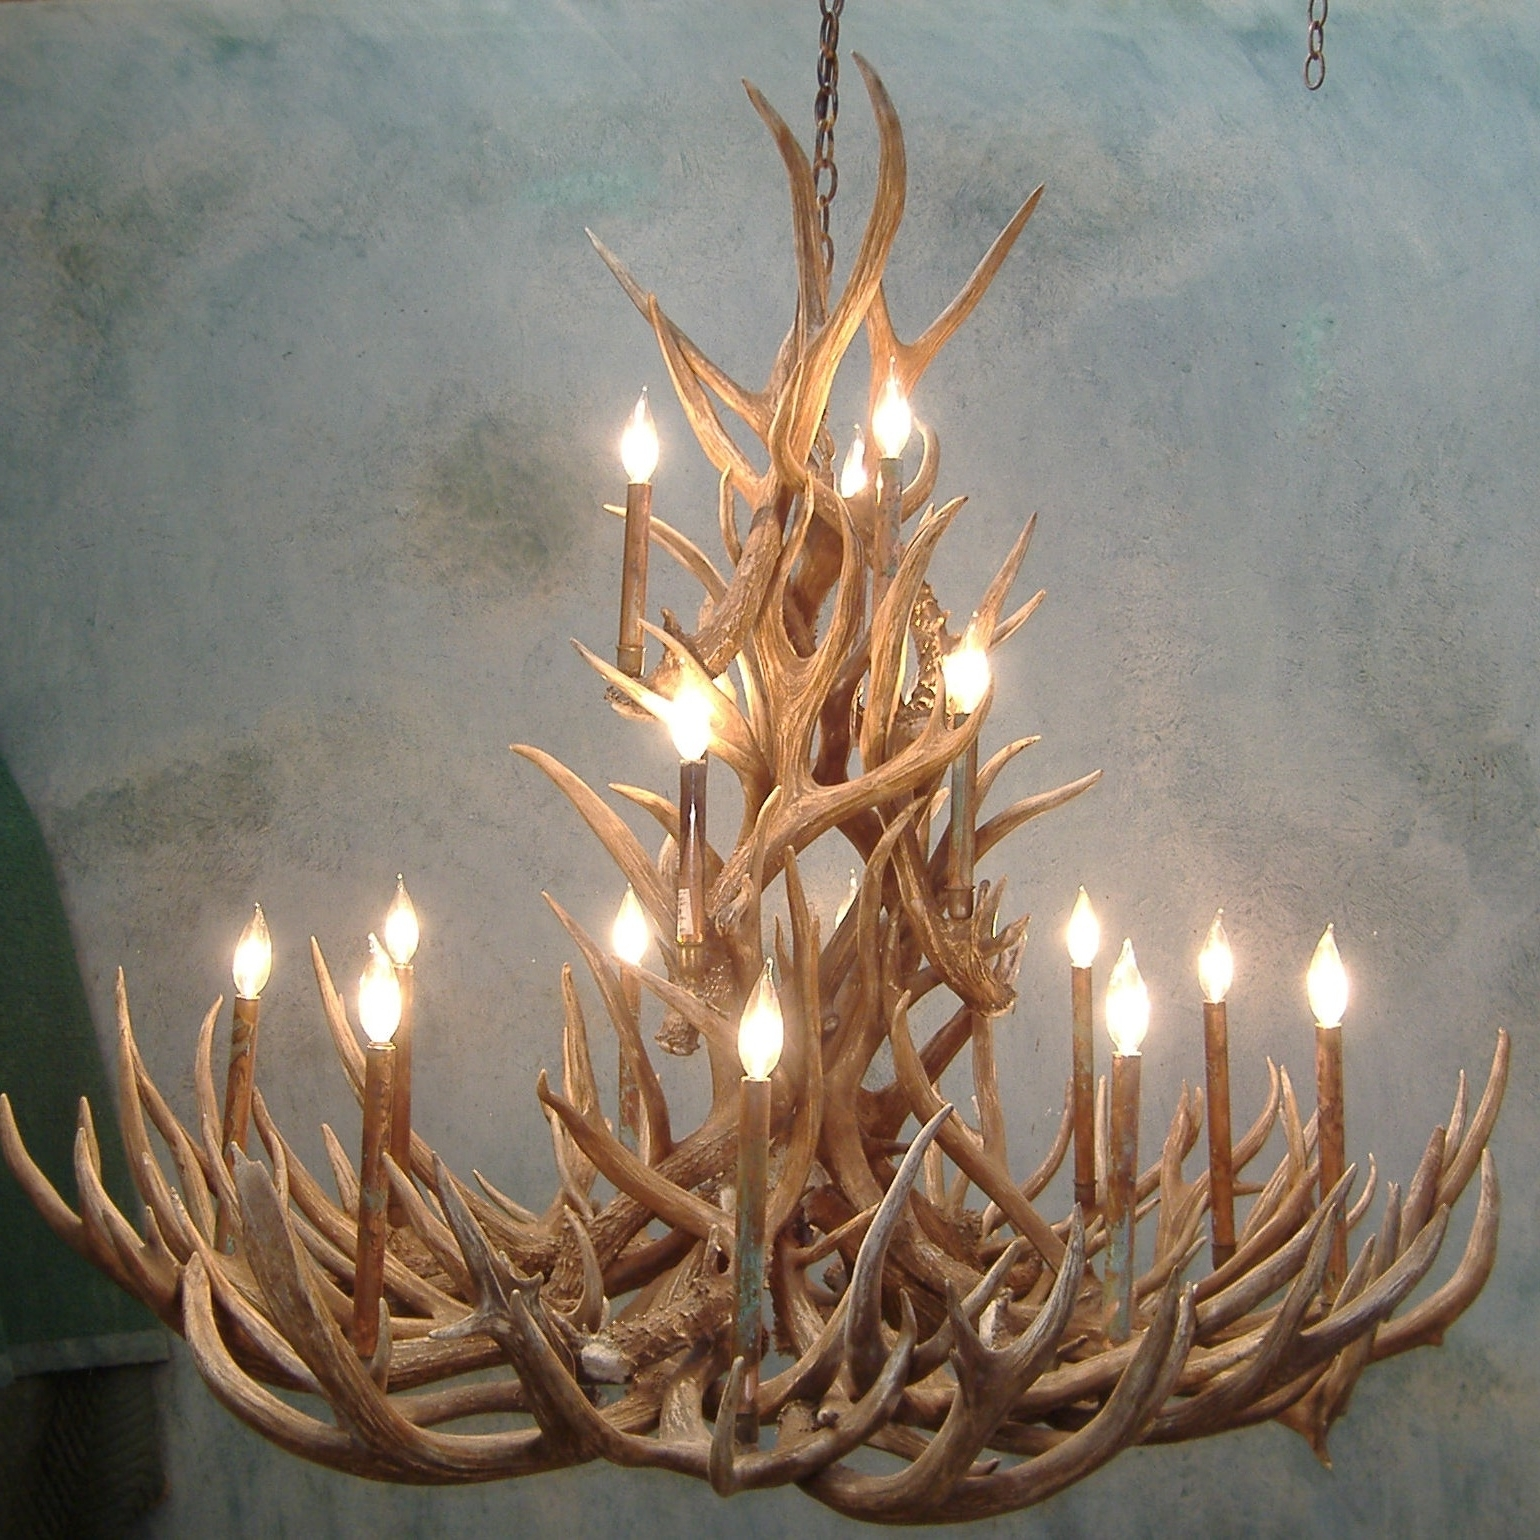 Spruce Mule Deer Antler Chandelier Intended For Most Recent Antlers Chandeliers (View 4 of 15)